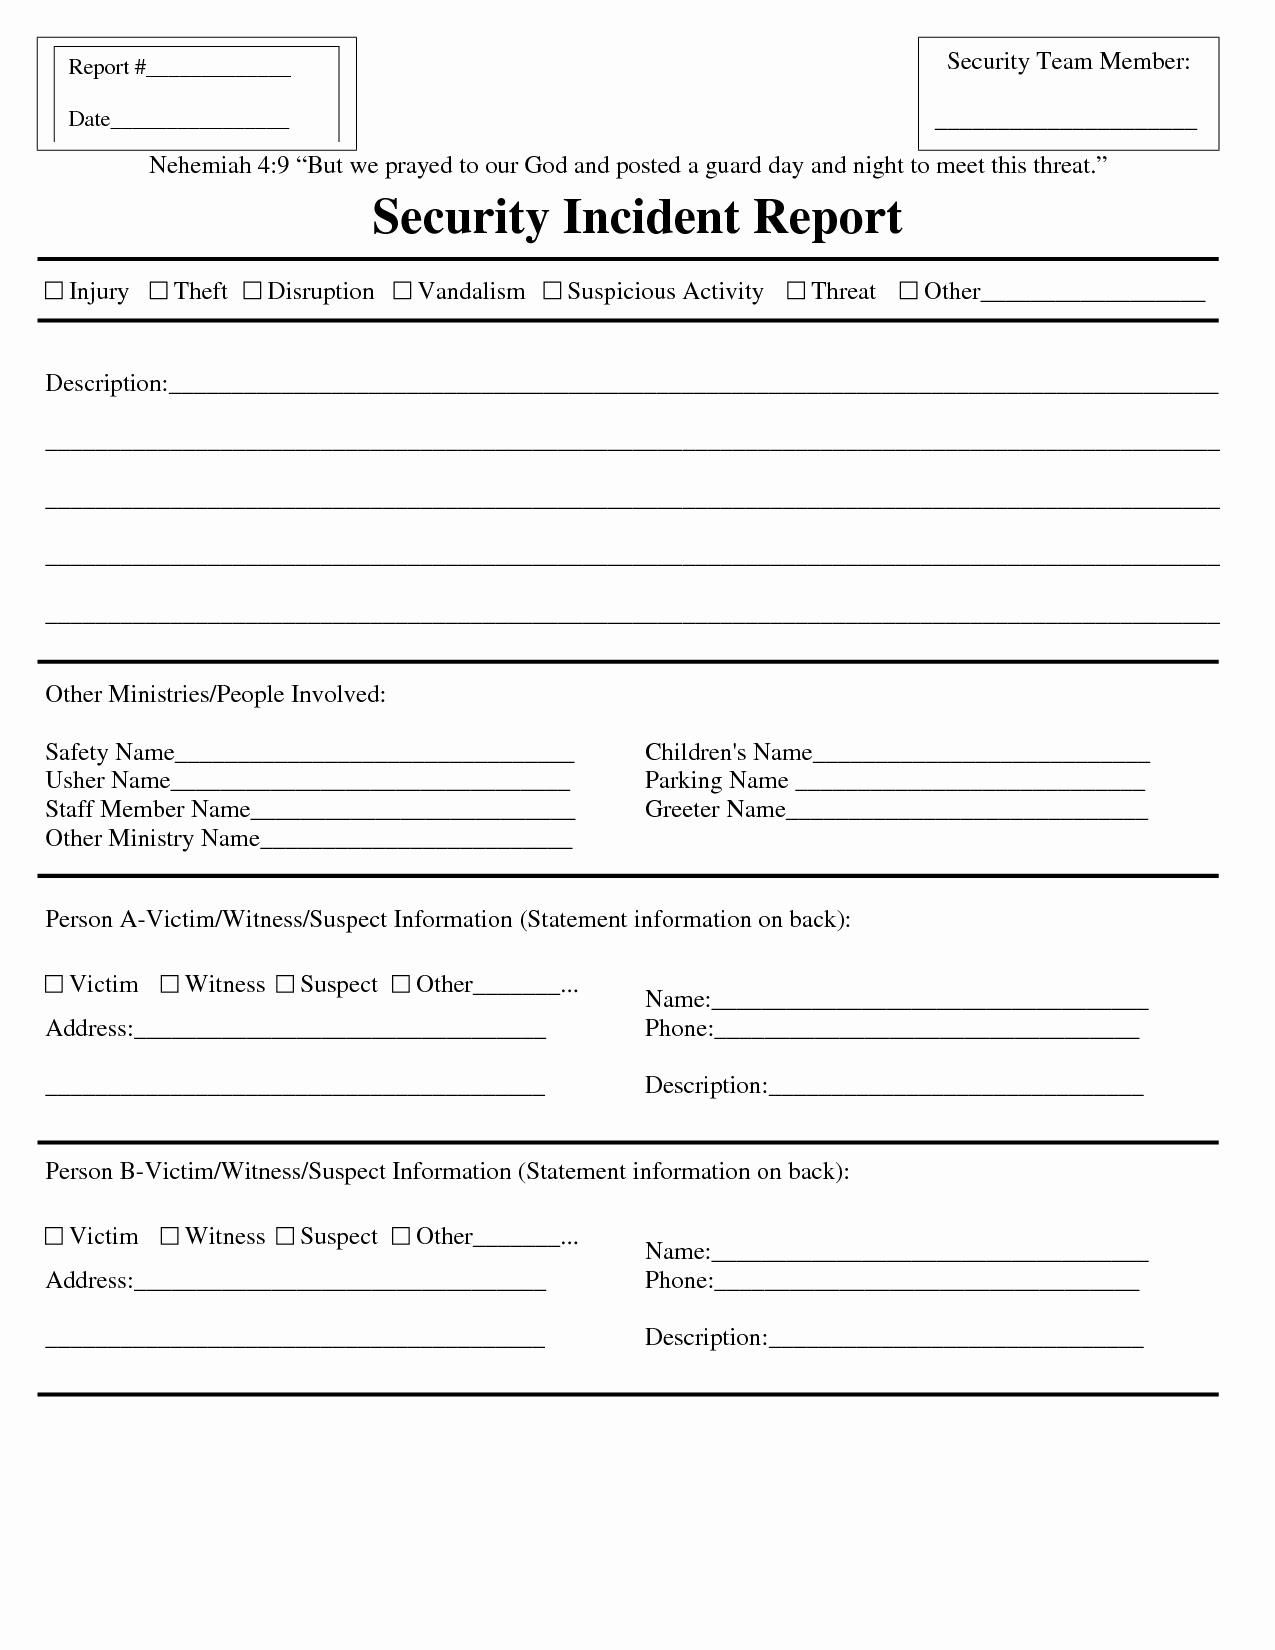 Security Incident Report Template Beautiful Premium Blank Security Incident Report Template Sample V